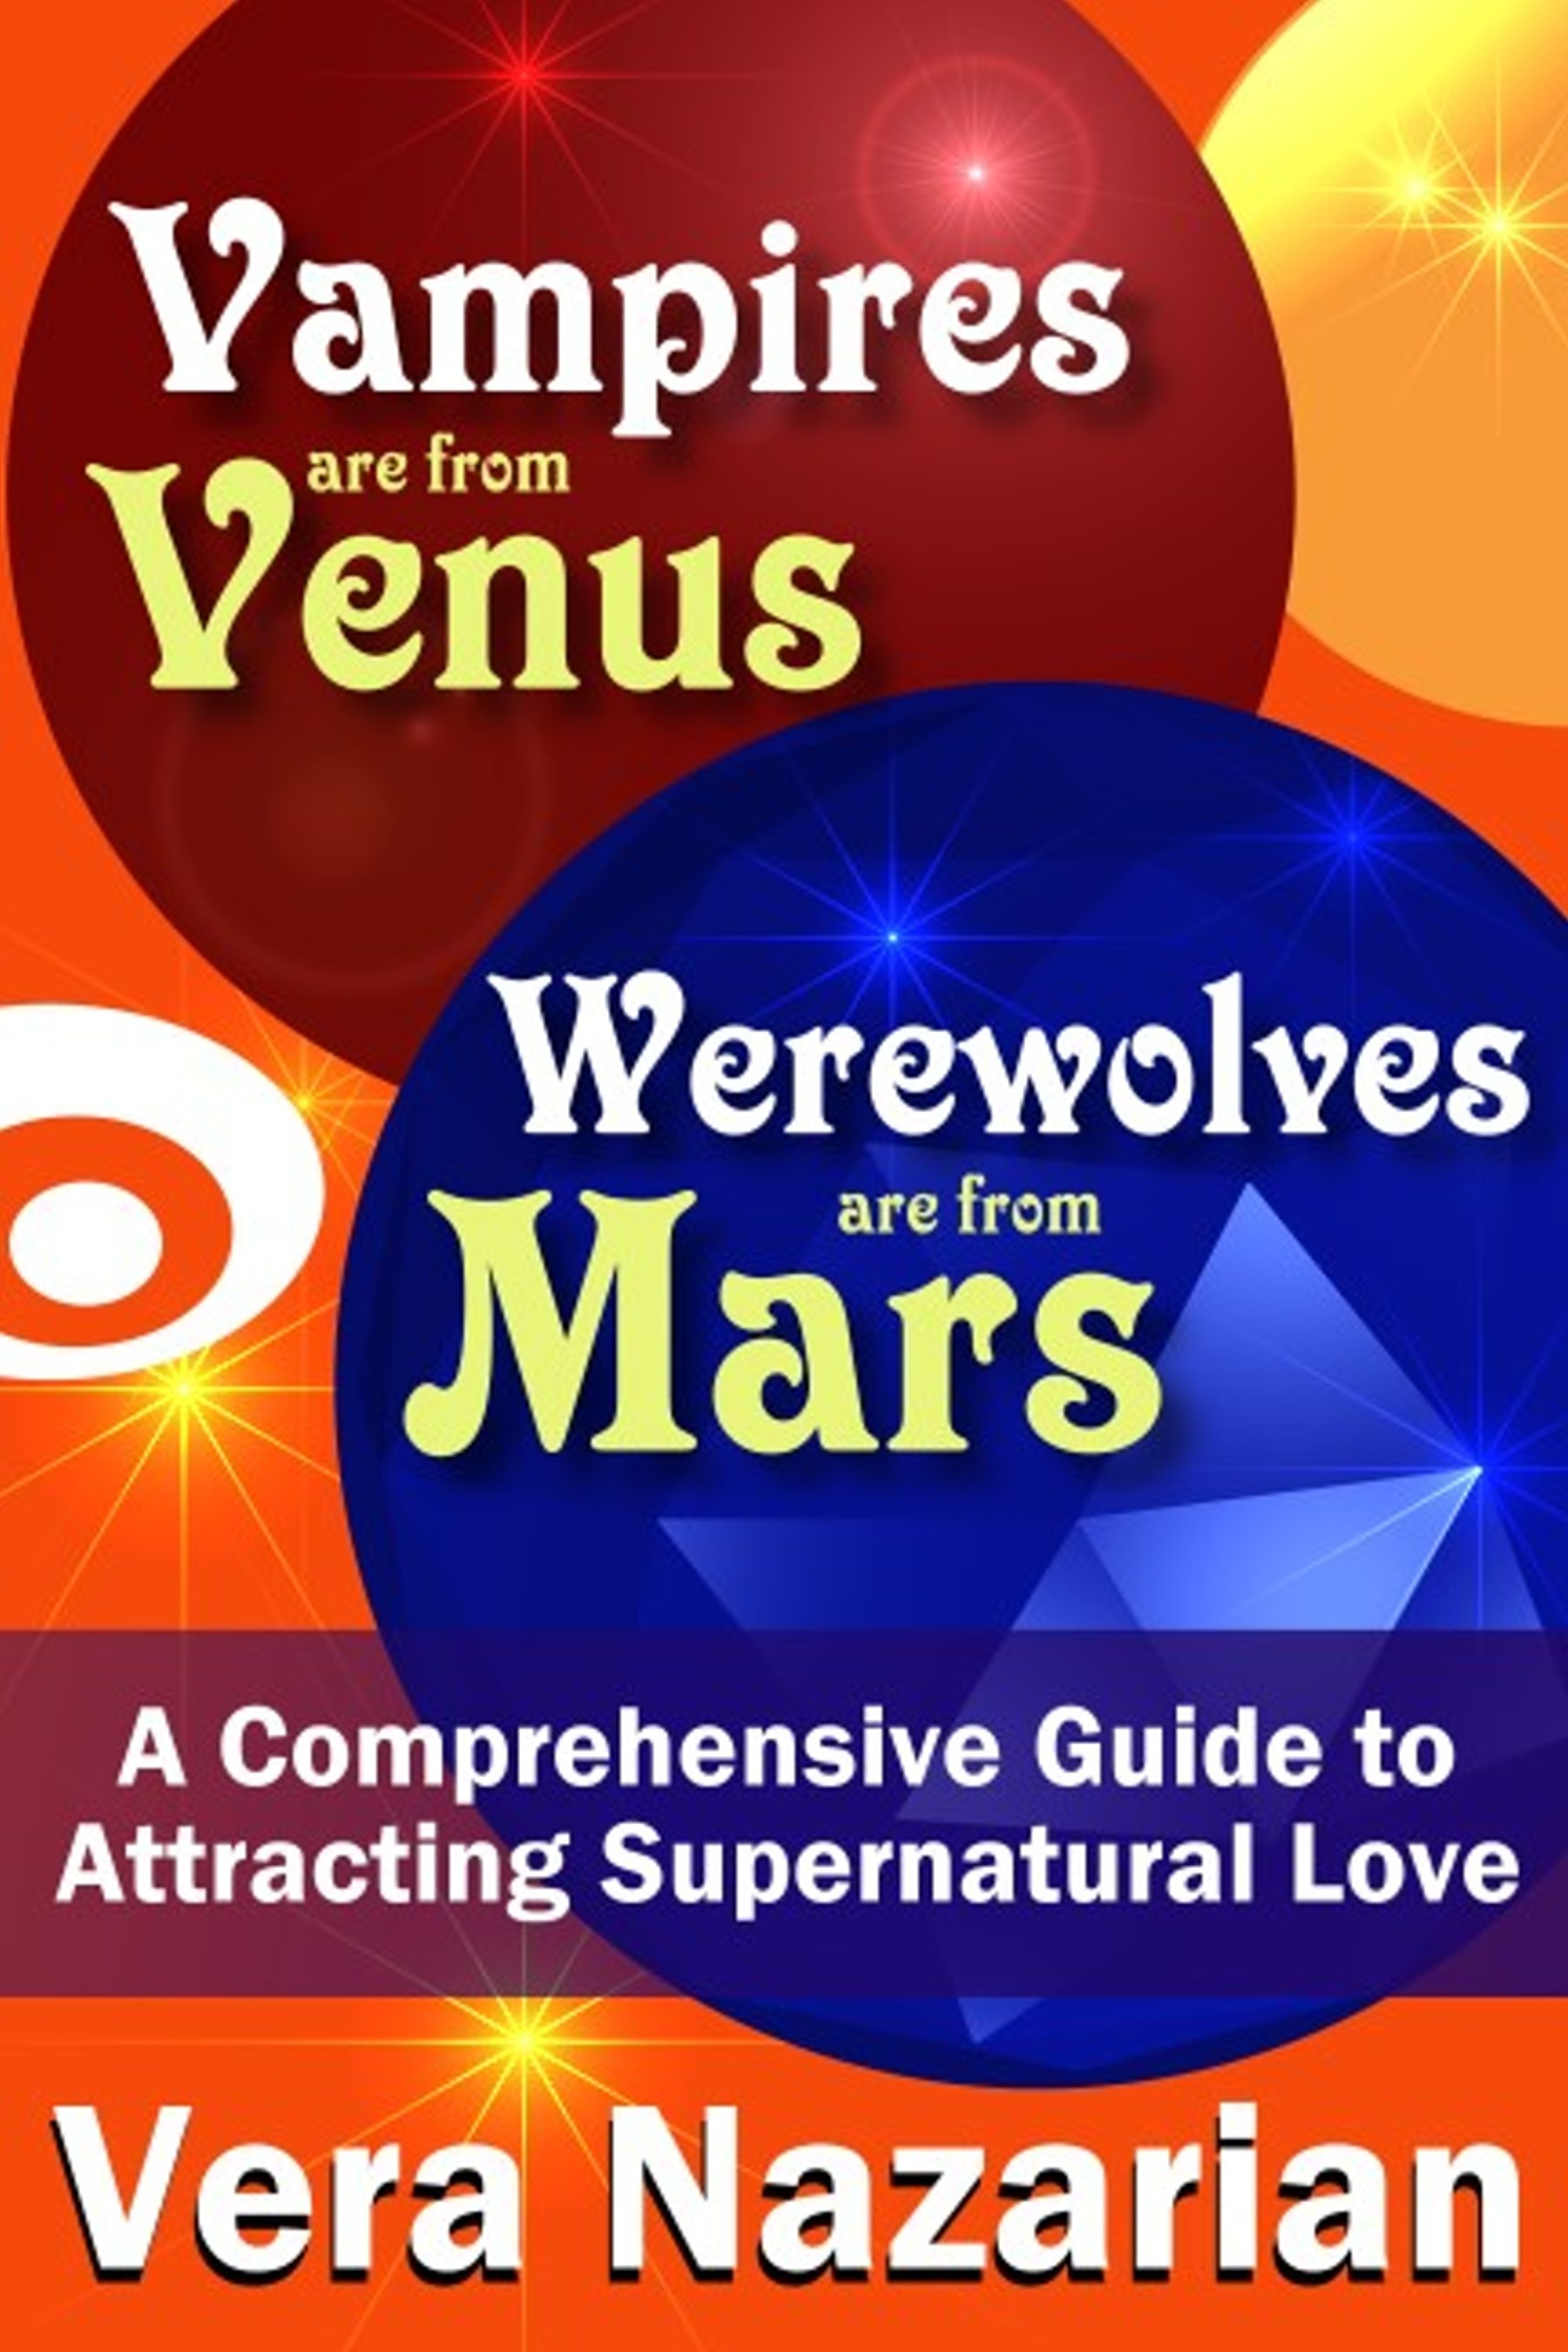 Vampires are from Venus, Werewolves are from Mars: A Comprehensive Guide to Attracting Supernatural Love